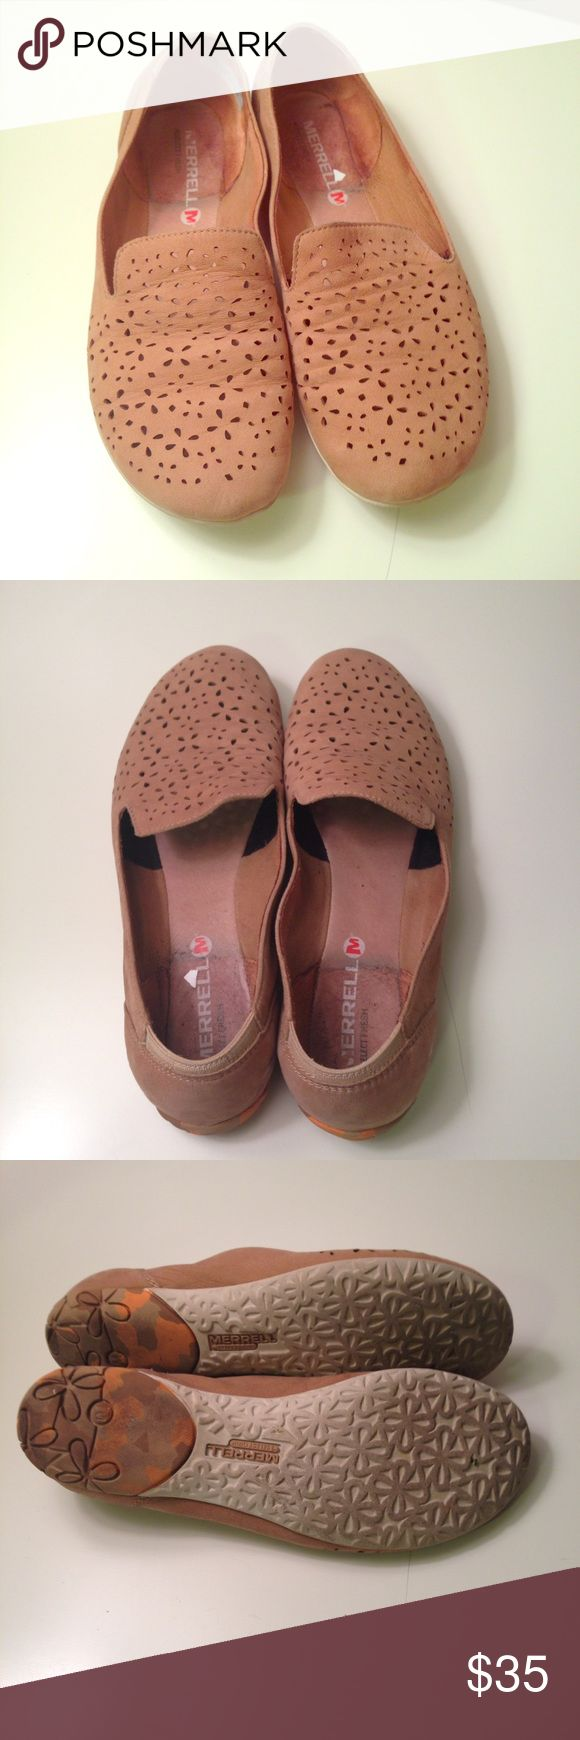 Merrill Mimix Maze in Brow Sugar These shoes are in good used condition. There are marks on the inside from the stickers Nordstrom Rack put in. From a smoke free, pet friendly home. No trades. Merrell Shoes Flats & Loafers